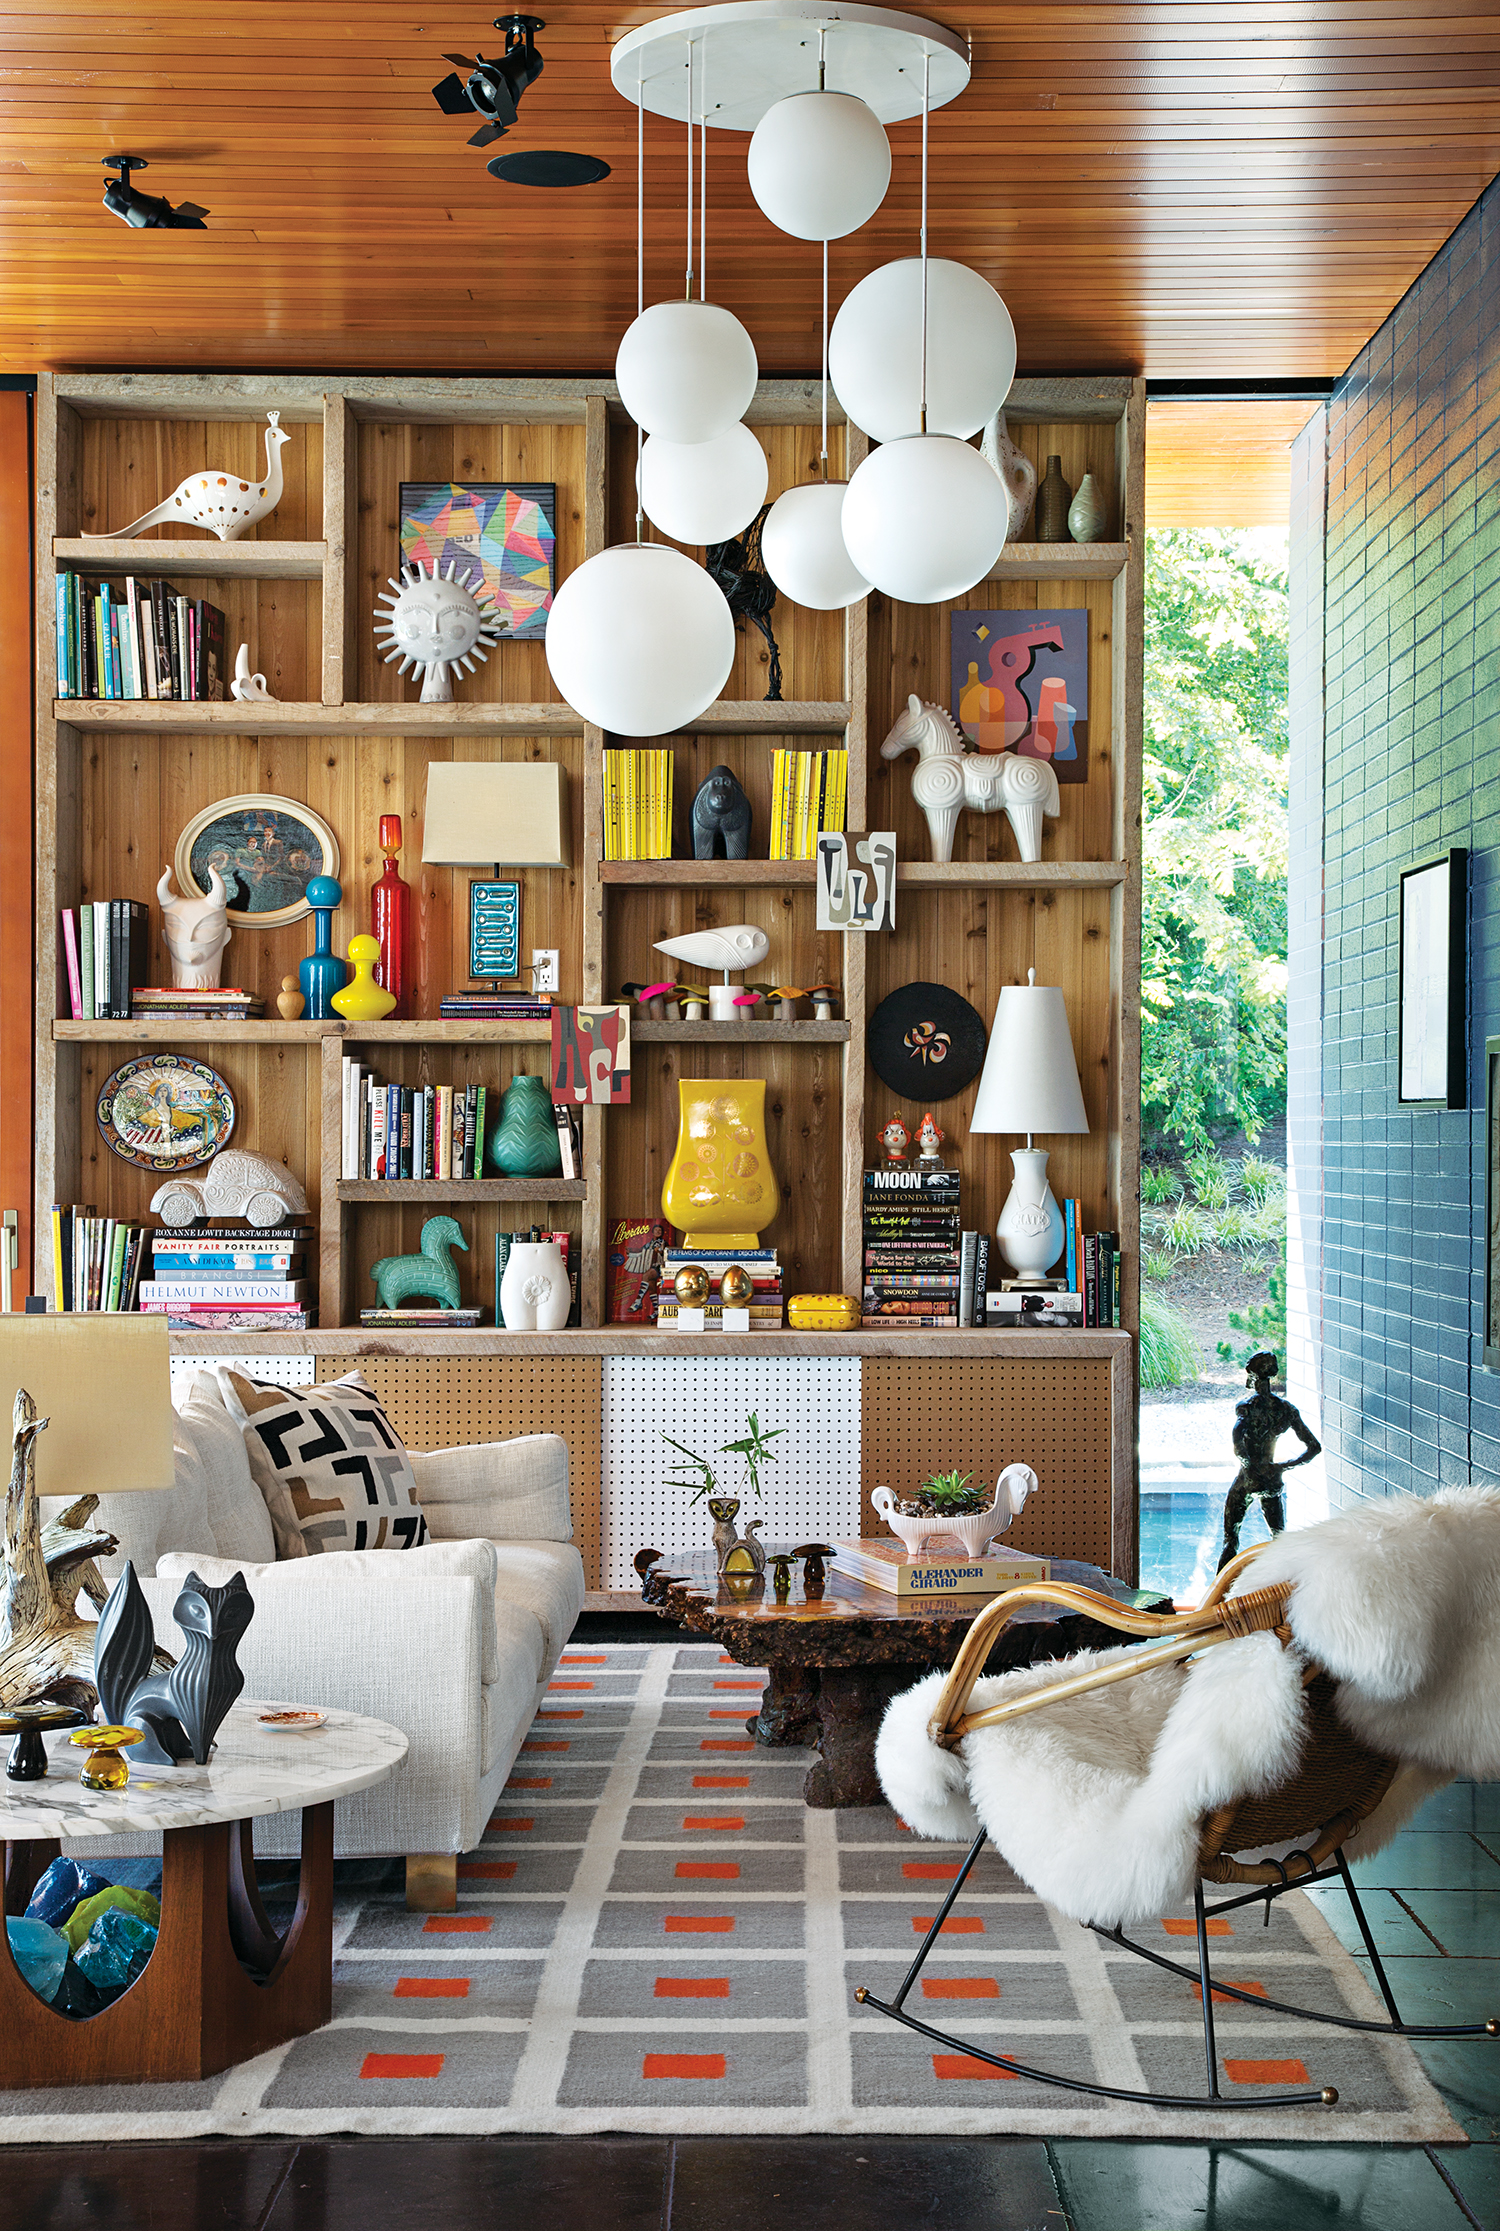 10 Stunning Celebrity Living Rooms to Inspire You5 Celebrity Living Rooms 10 Stunning Celebrity Living Rooms to Inspire You 10 Stunning Celebrity Living Rooms to Inspire You5